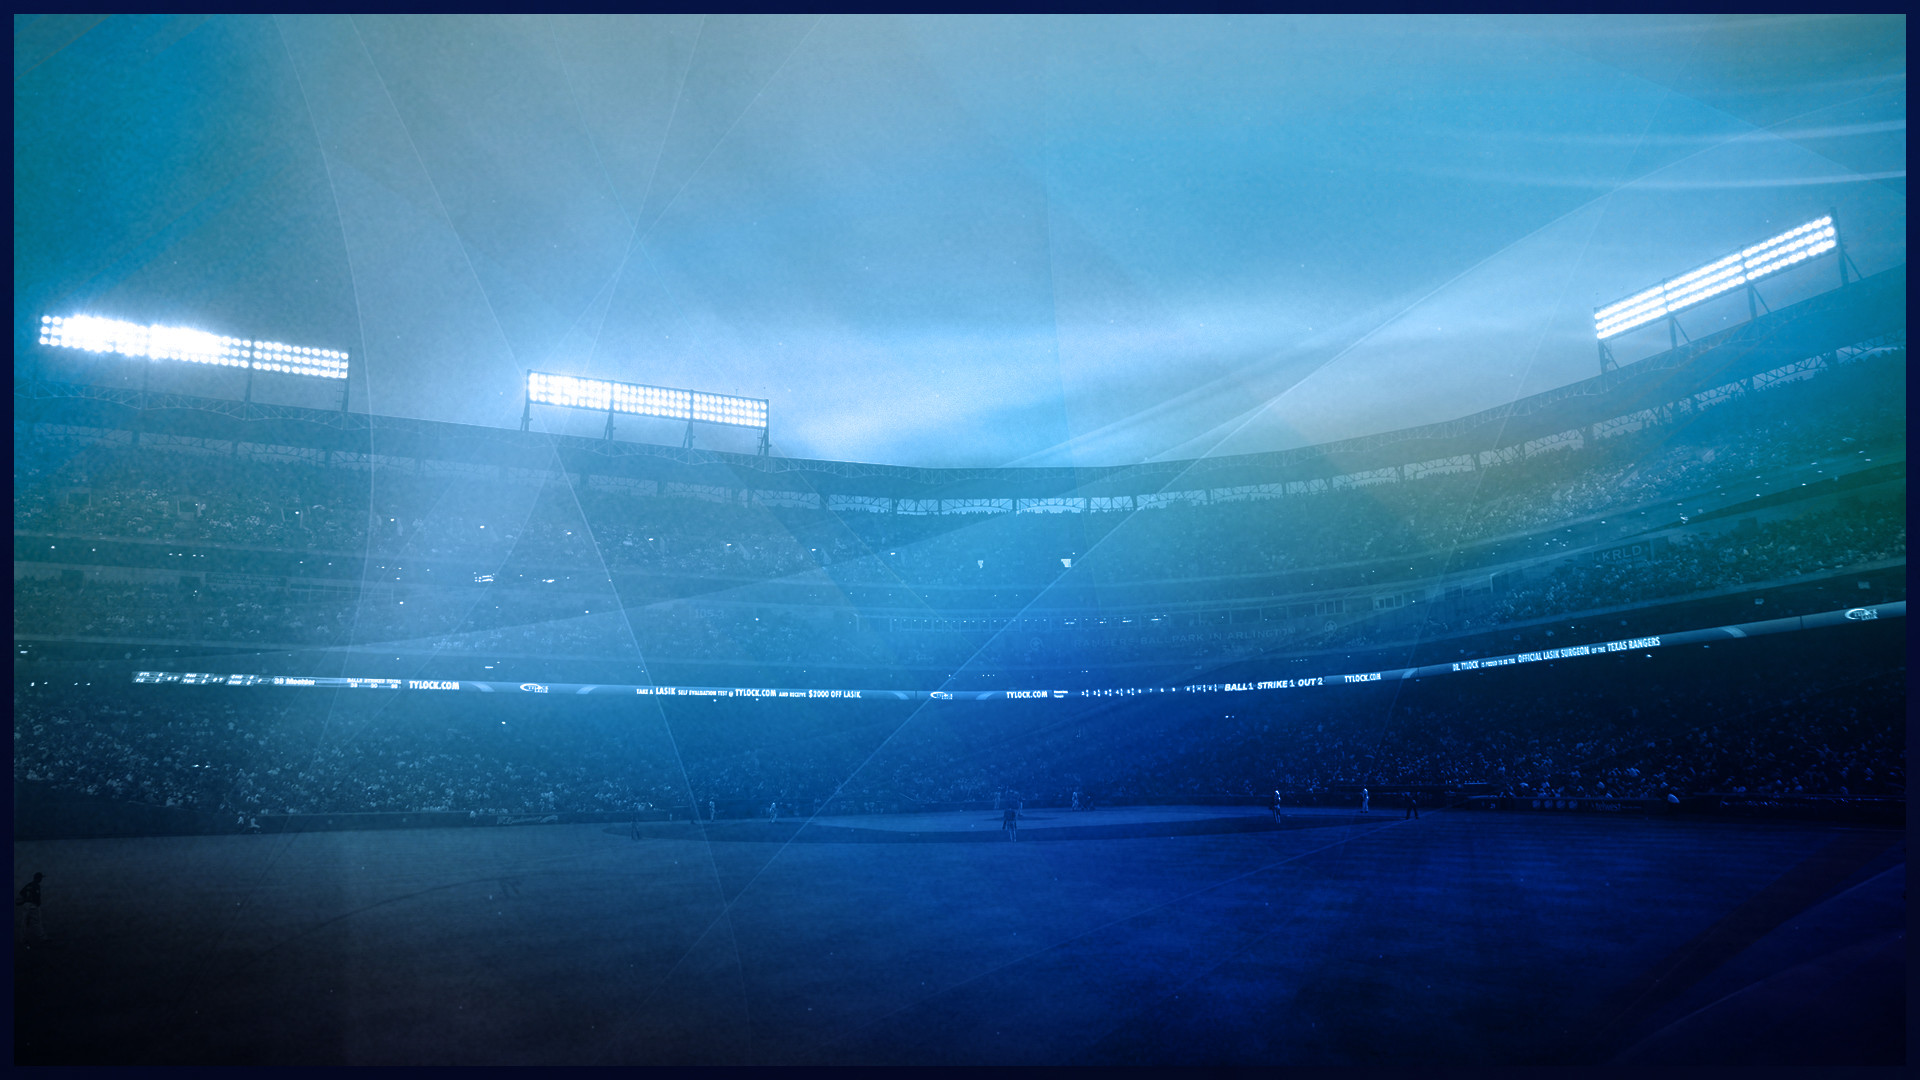 High Resolution Football Wallpapers Group 86: Football Stadium Background (60+ Images